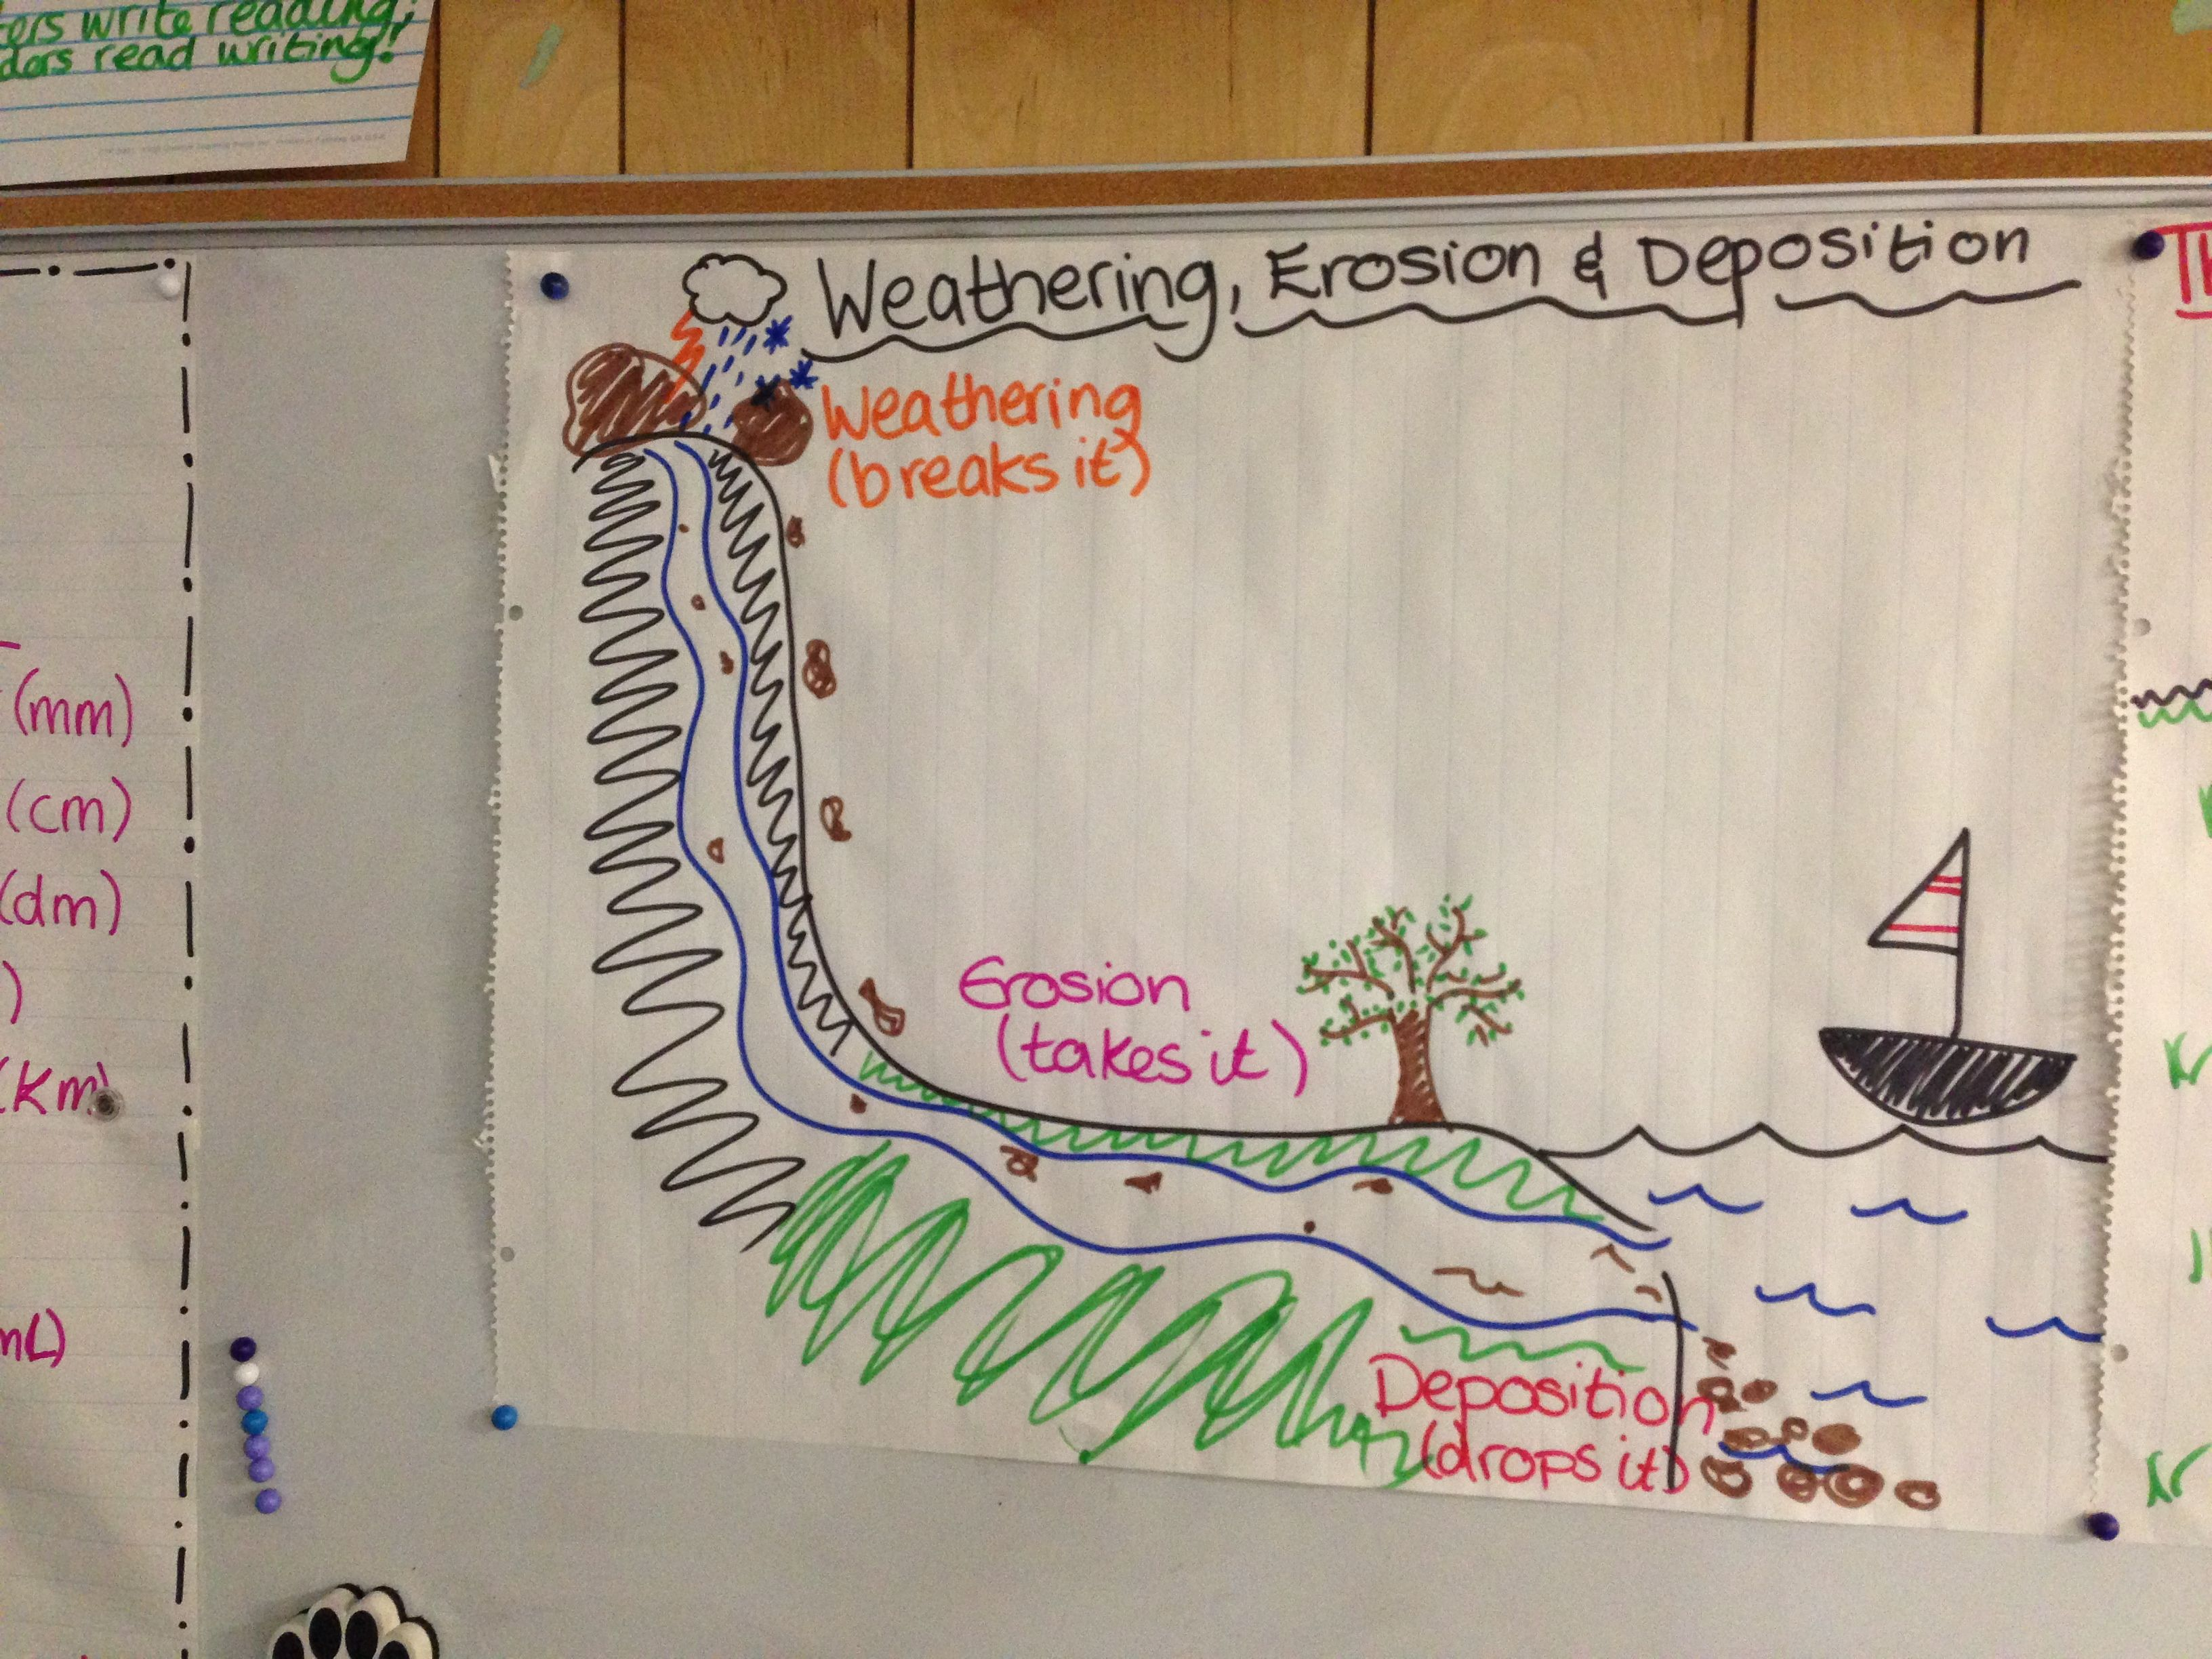 Weathering Erosion Deposition Poster 4th Grade Science Poster Anchor Chart